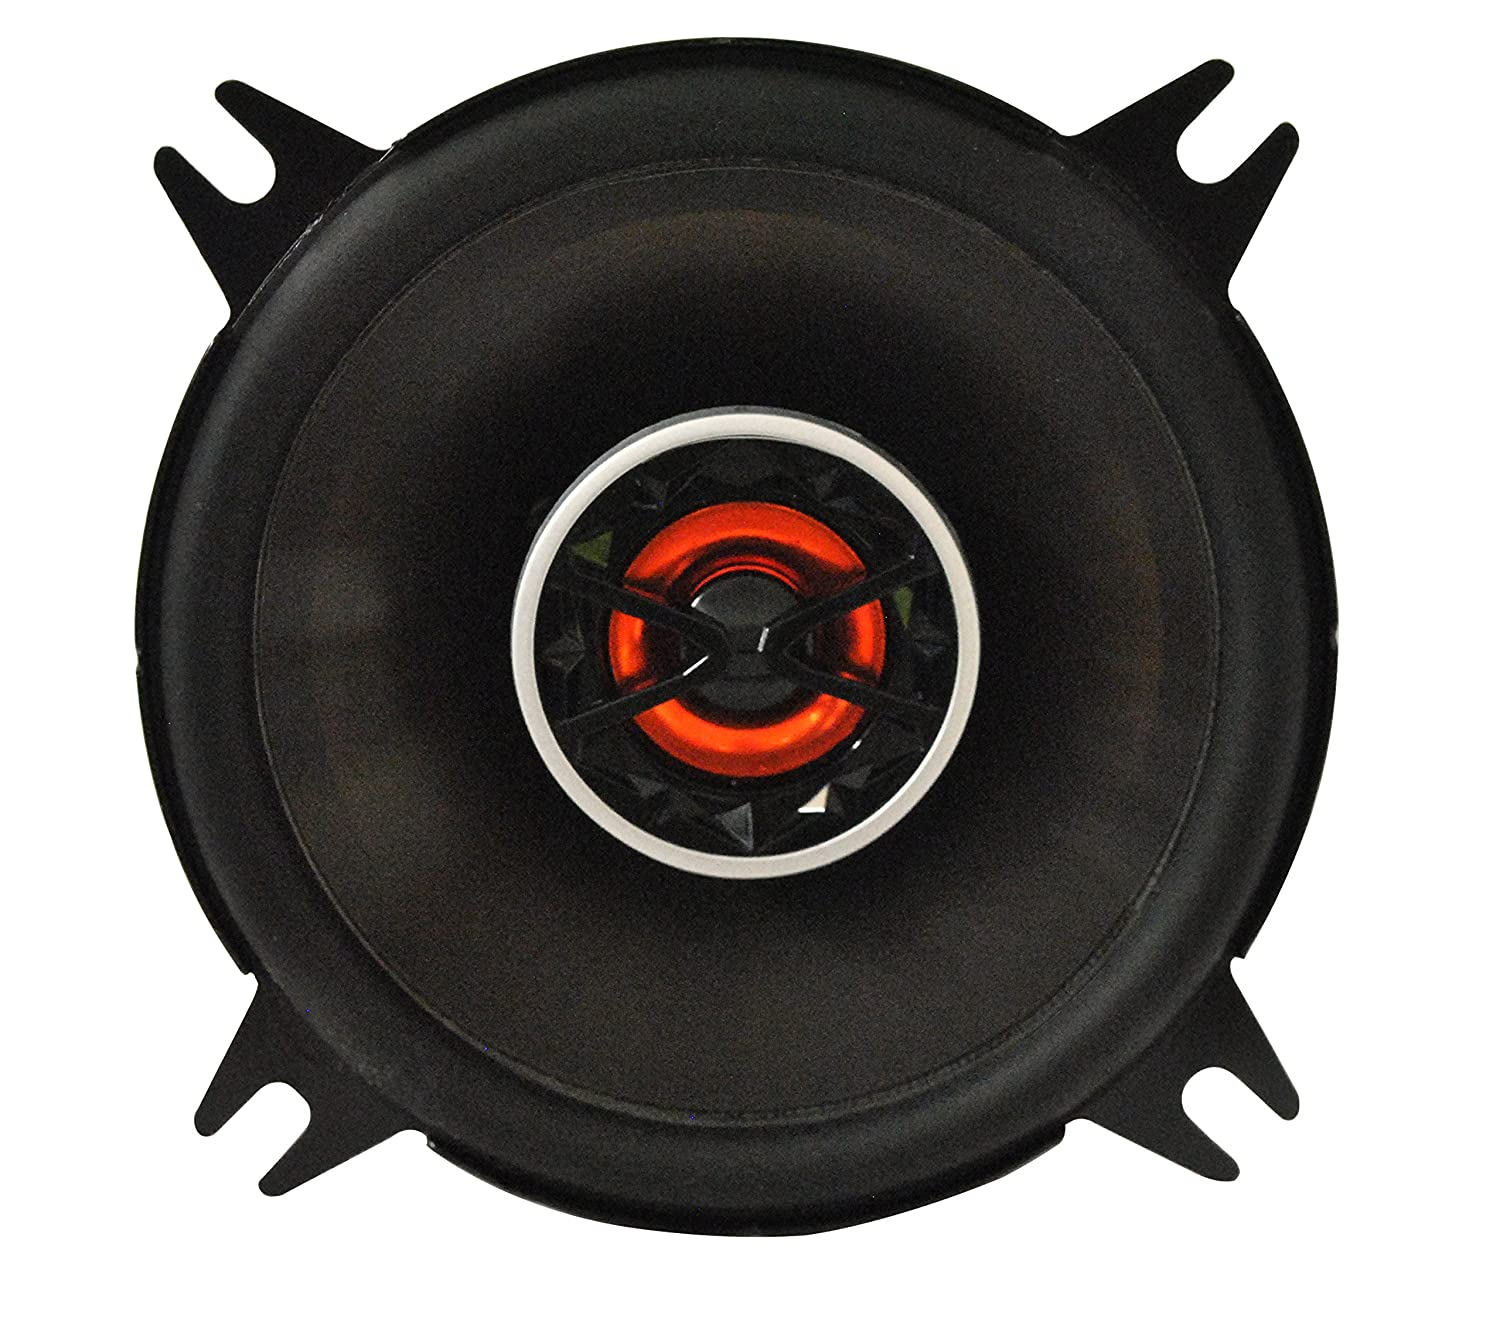 JBL CLUB3020 3.5' 120W Club Series 2-Way Coaxial Car Speaker